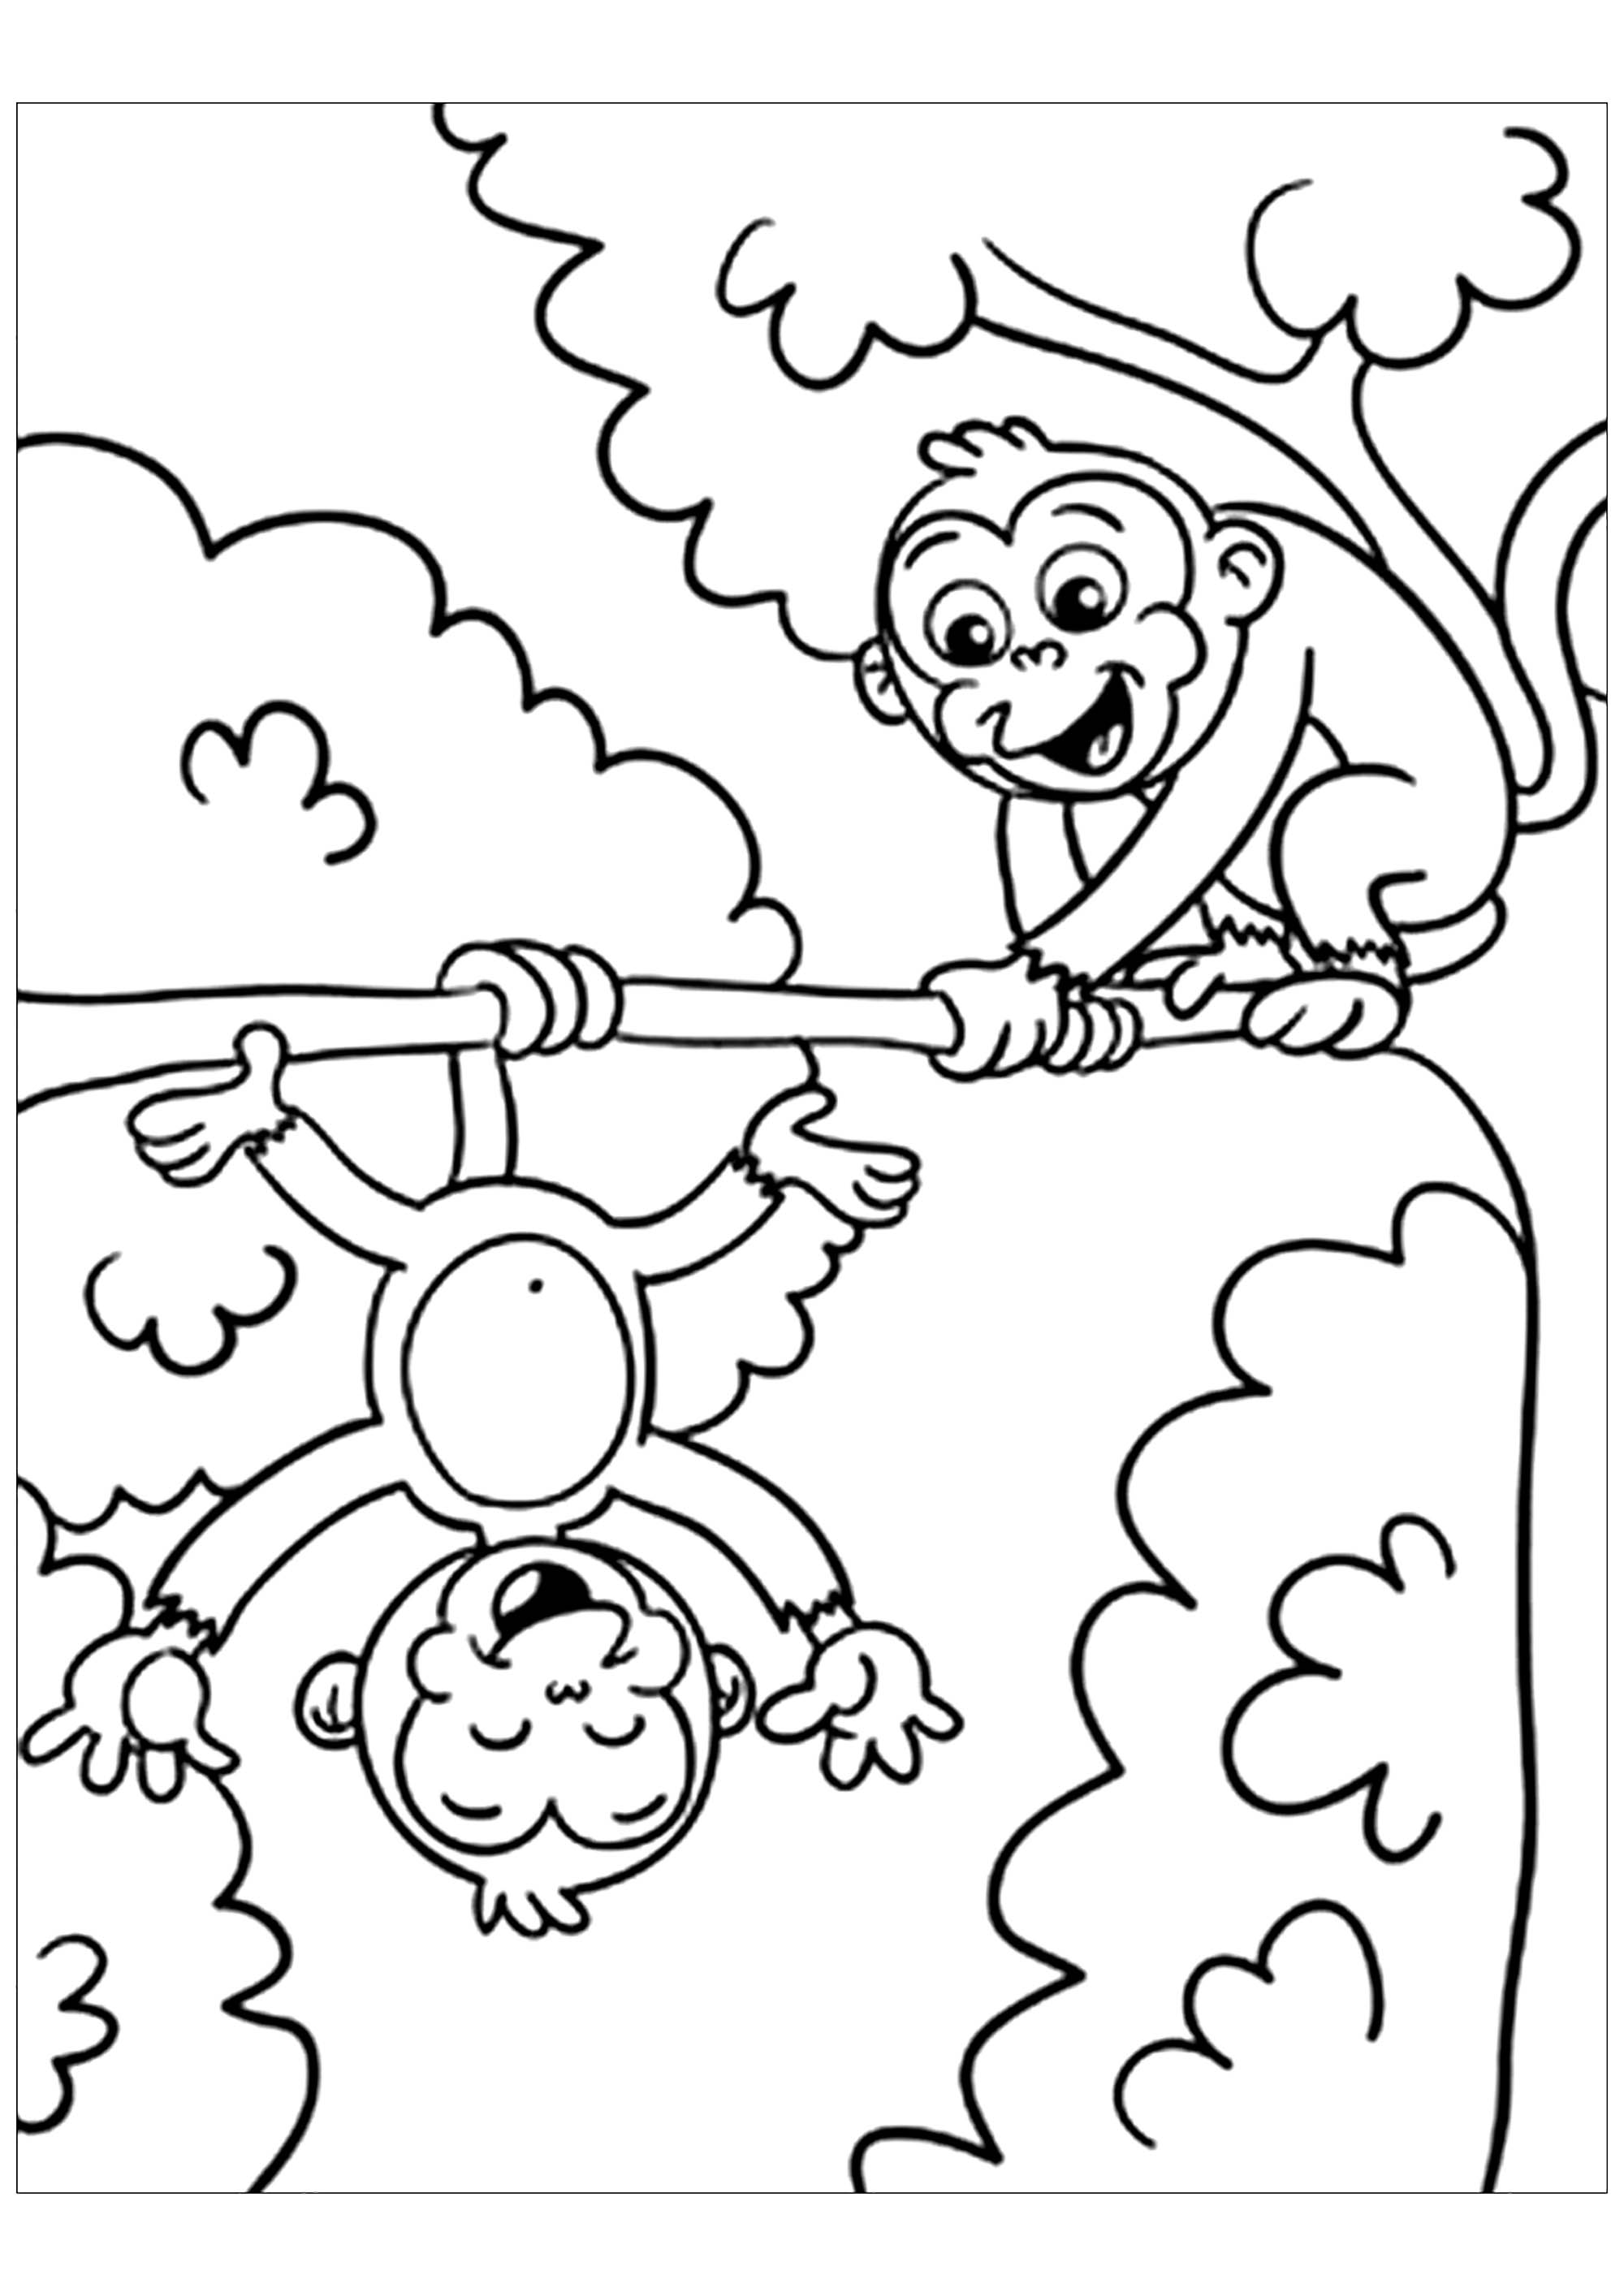 free childrens coloring pages kids page butterfly coloring pages printable colouring free childrens pages coloring